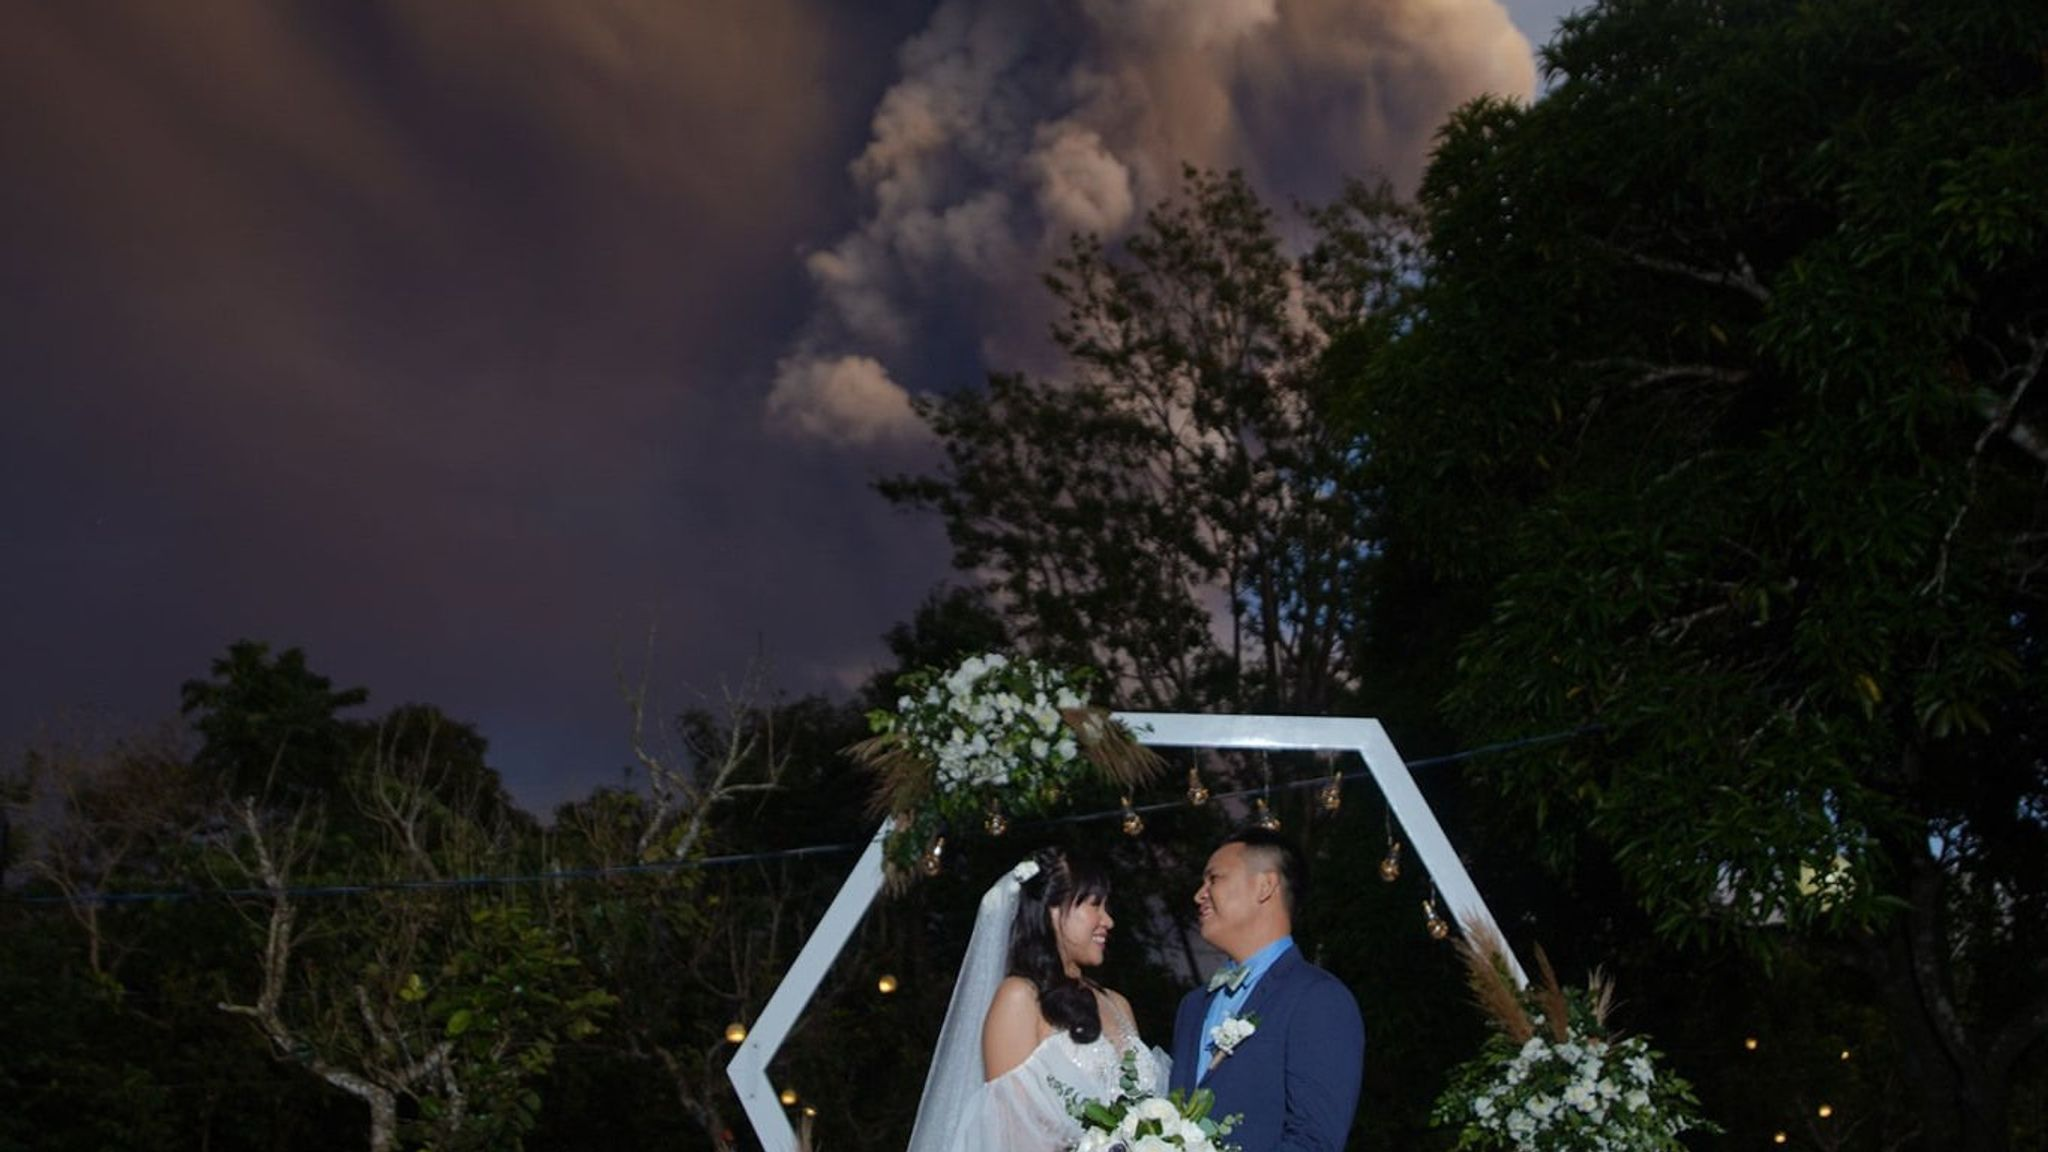 Philippines volcano eruption: Couple get married despite backdrop of volcanic ash cloud